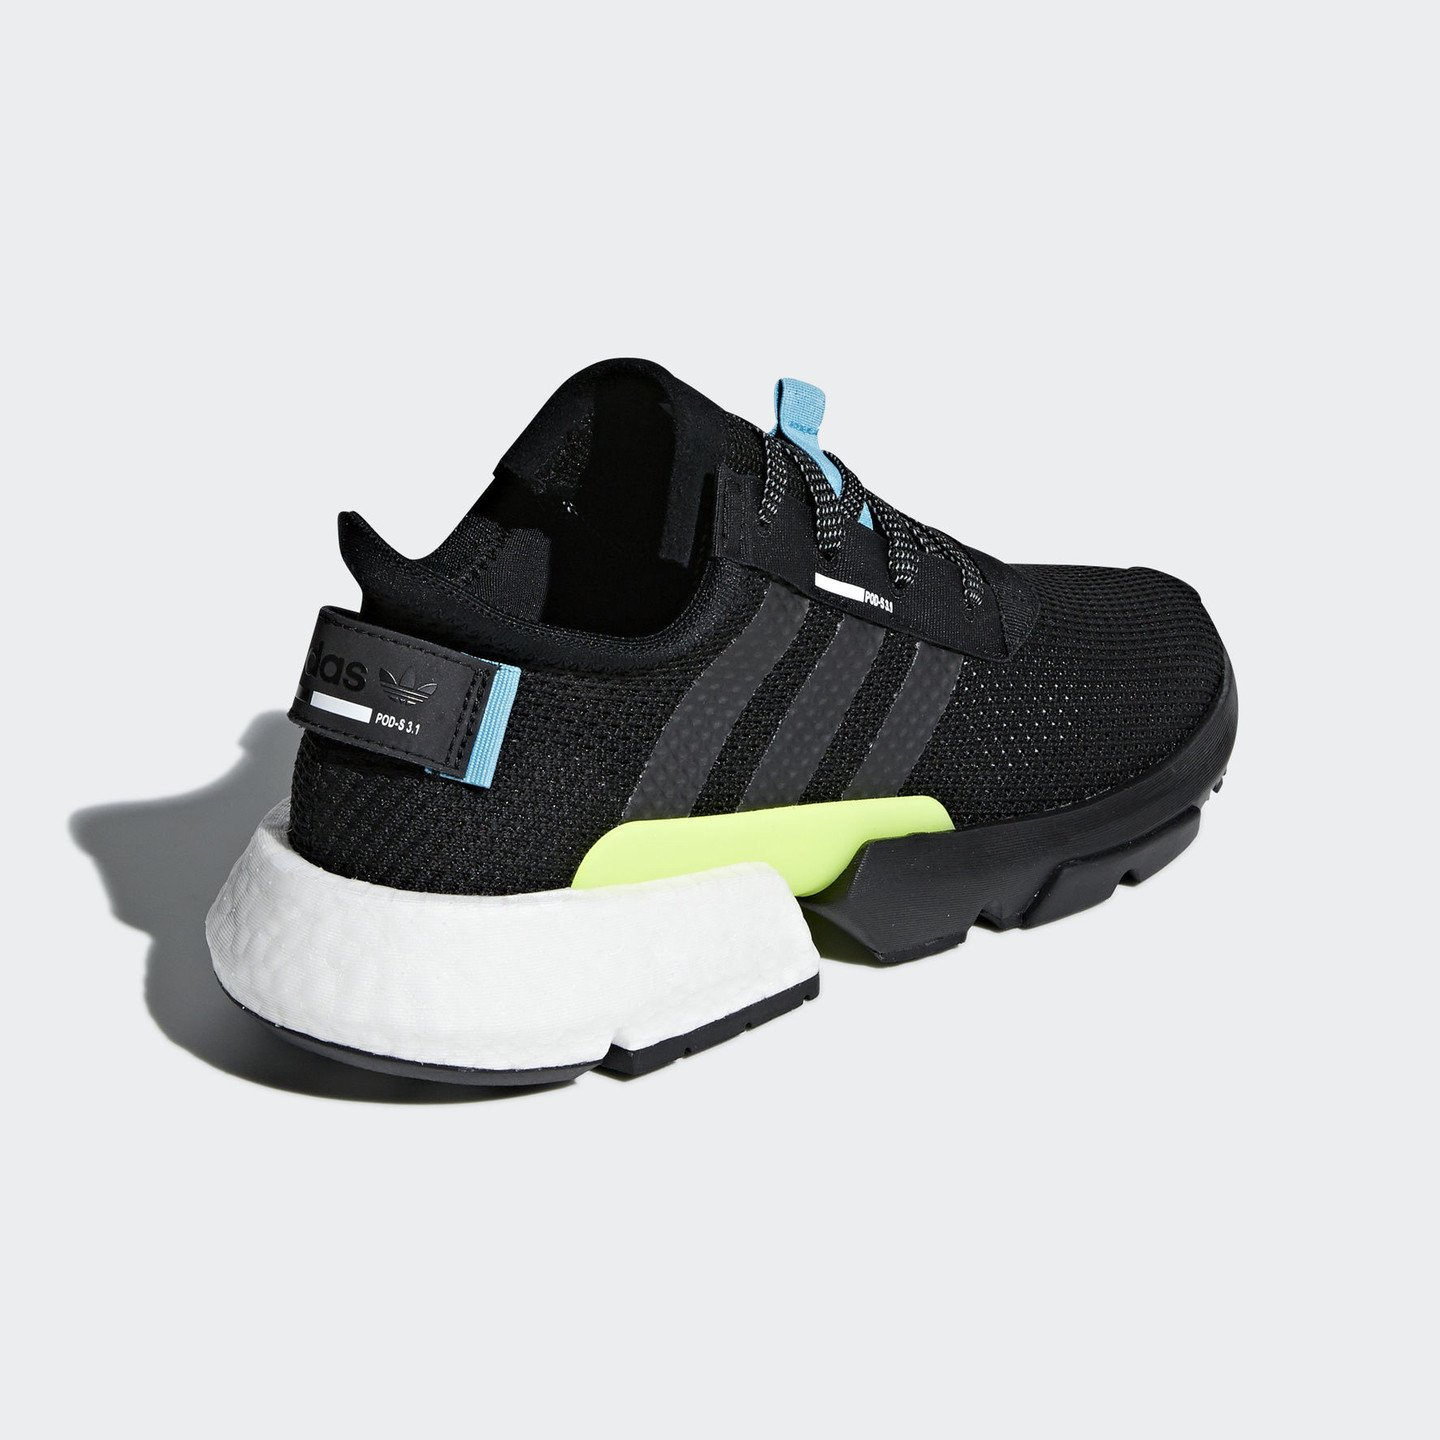 Adidas P.O.D.-S3.1 Boost Core Black / Shock Yellow / Hyper Blue AQ1059